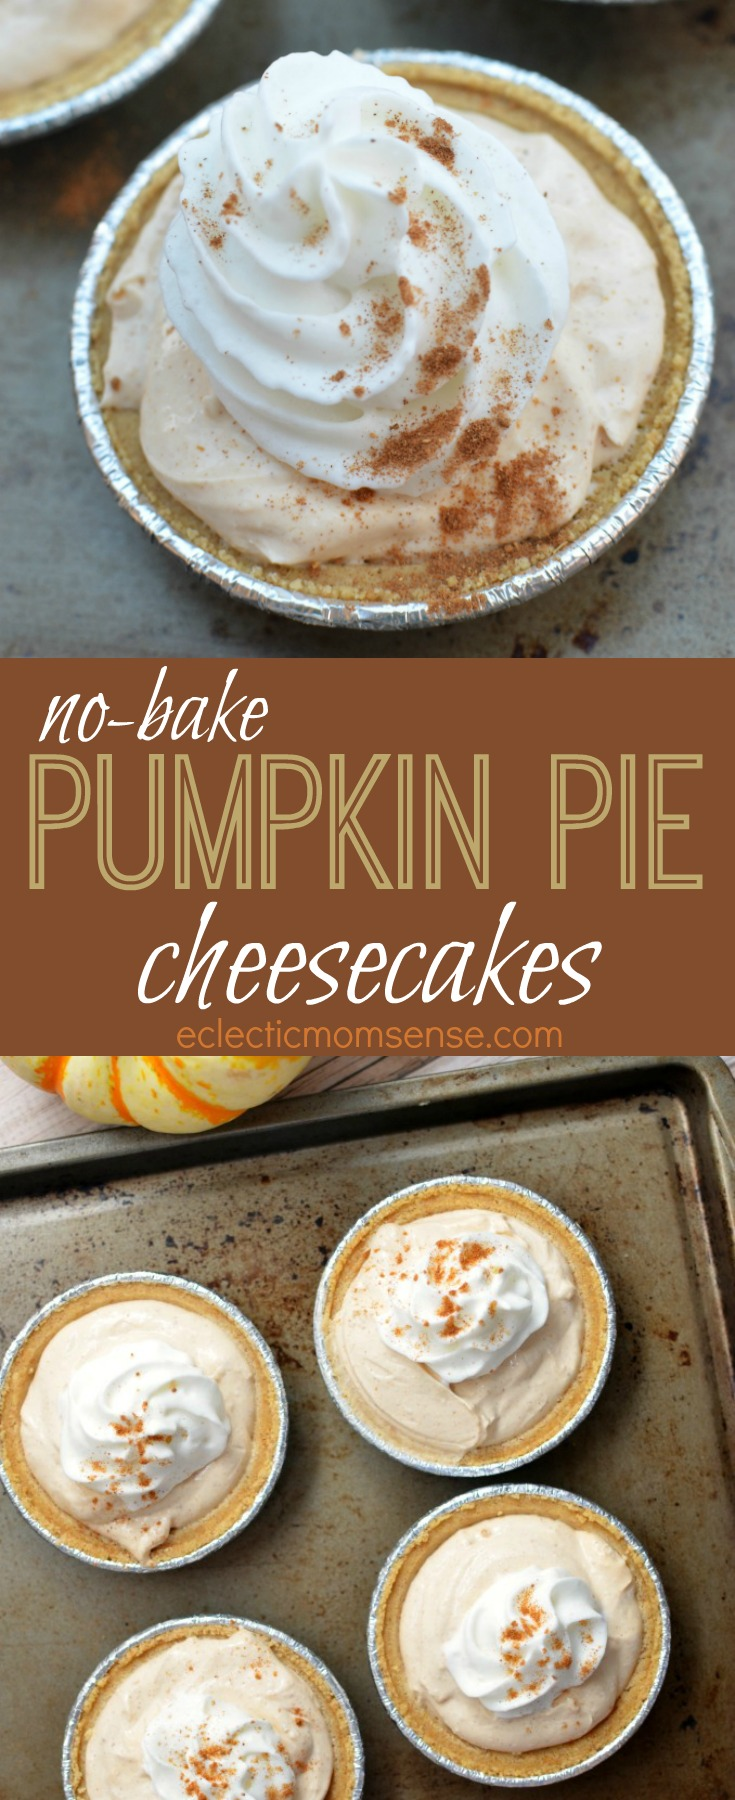 no-bake Pumpkin Pie Cheesecakes